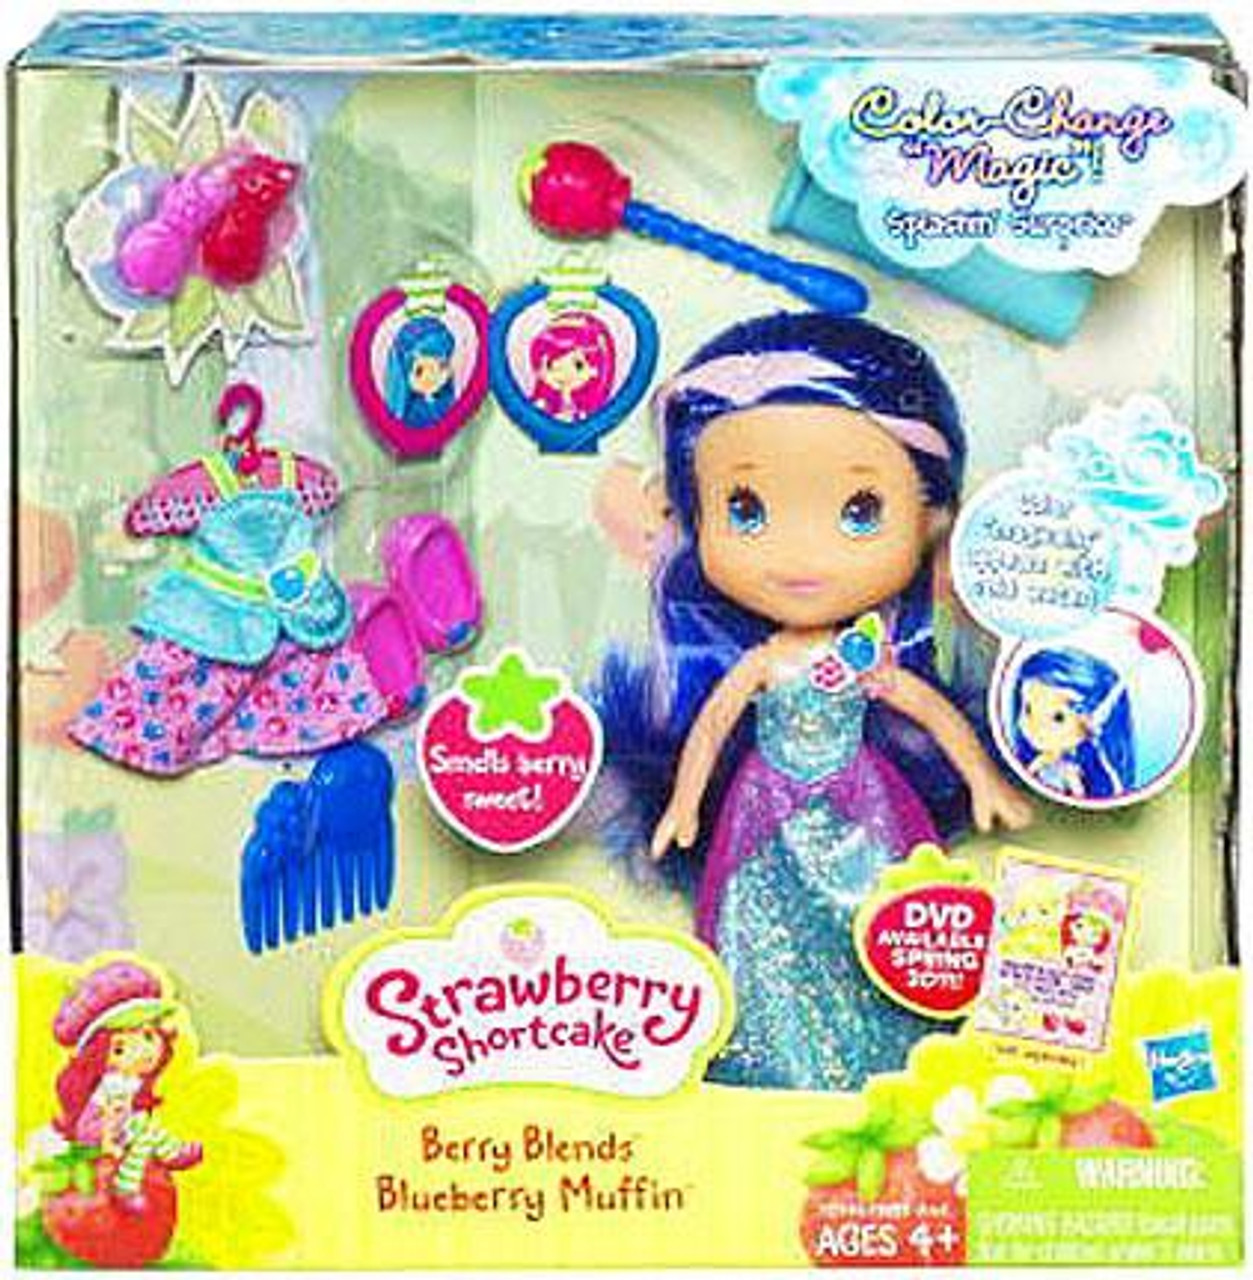 Strawberry Shortcake Berry Blends Blueberry Muffin Doll